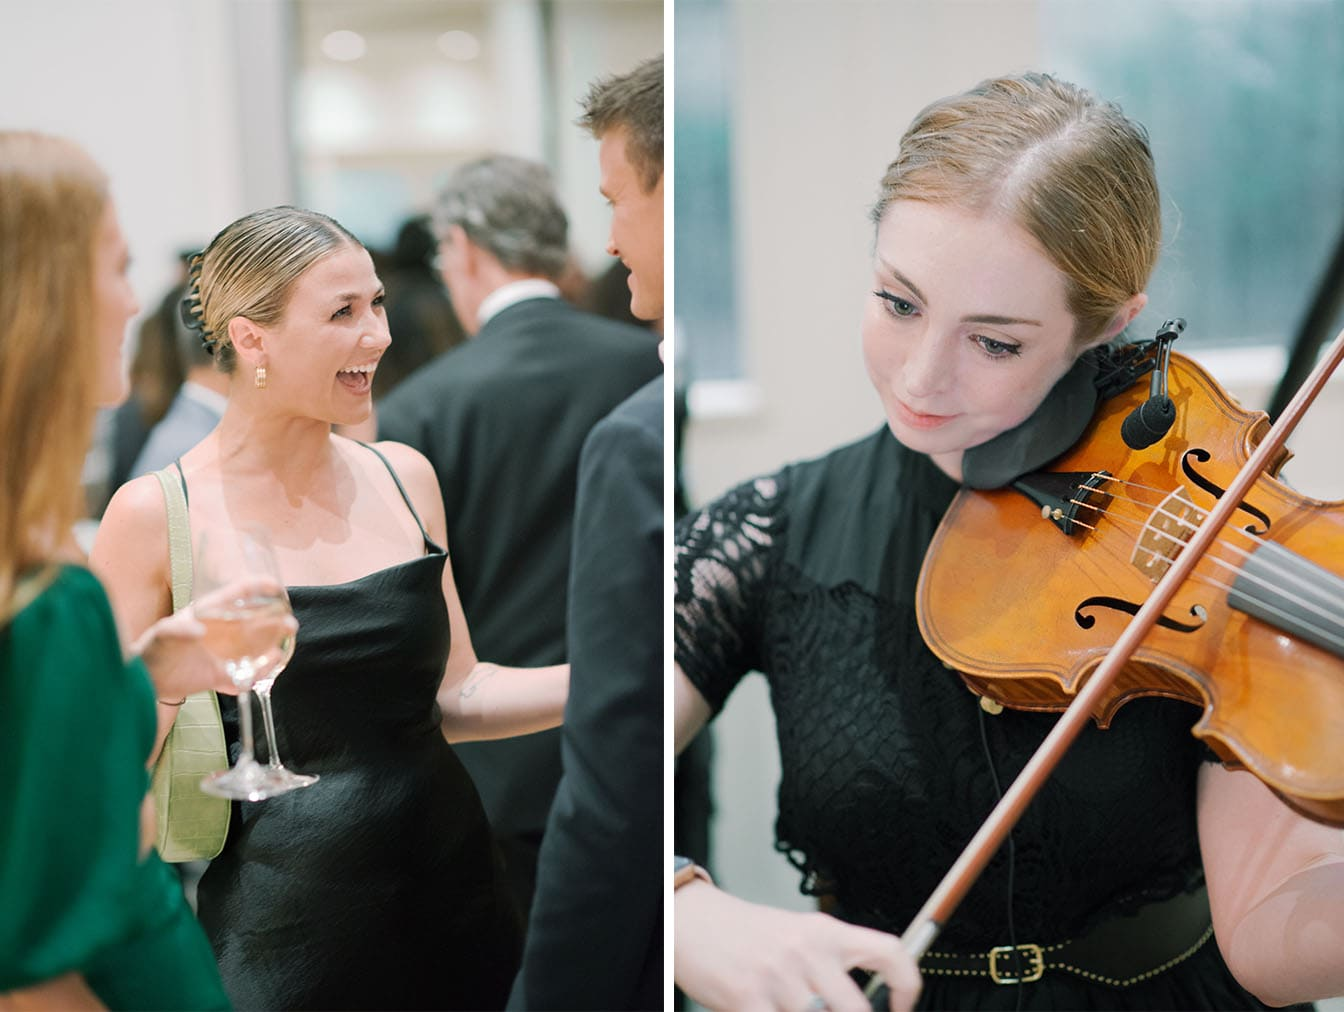 Musician playing the violin during cocktail hour